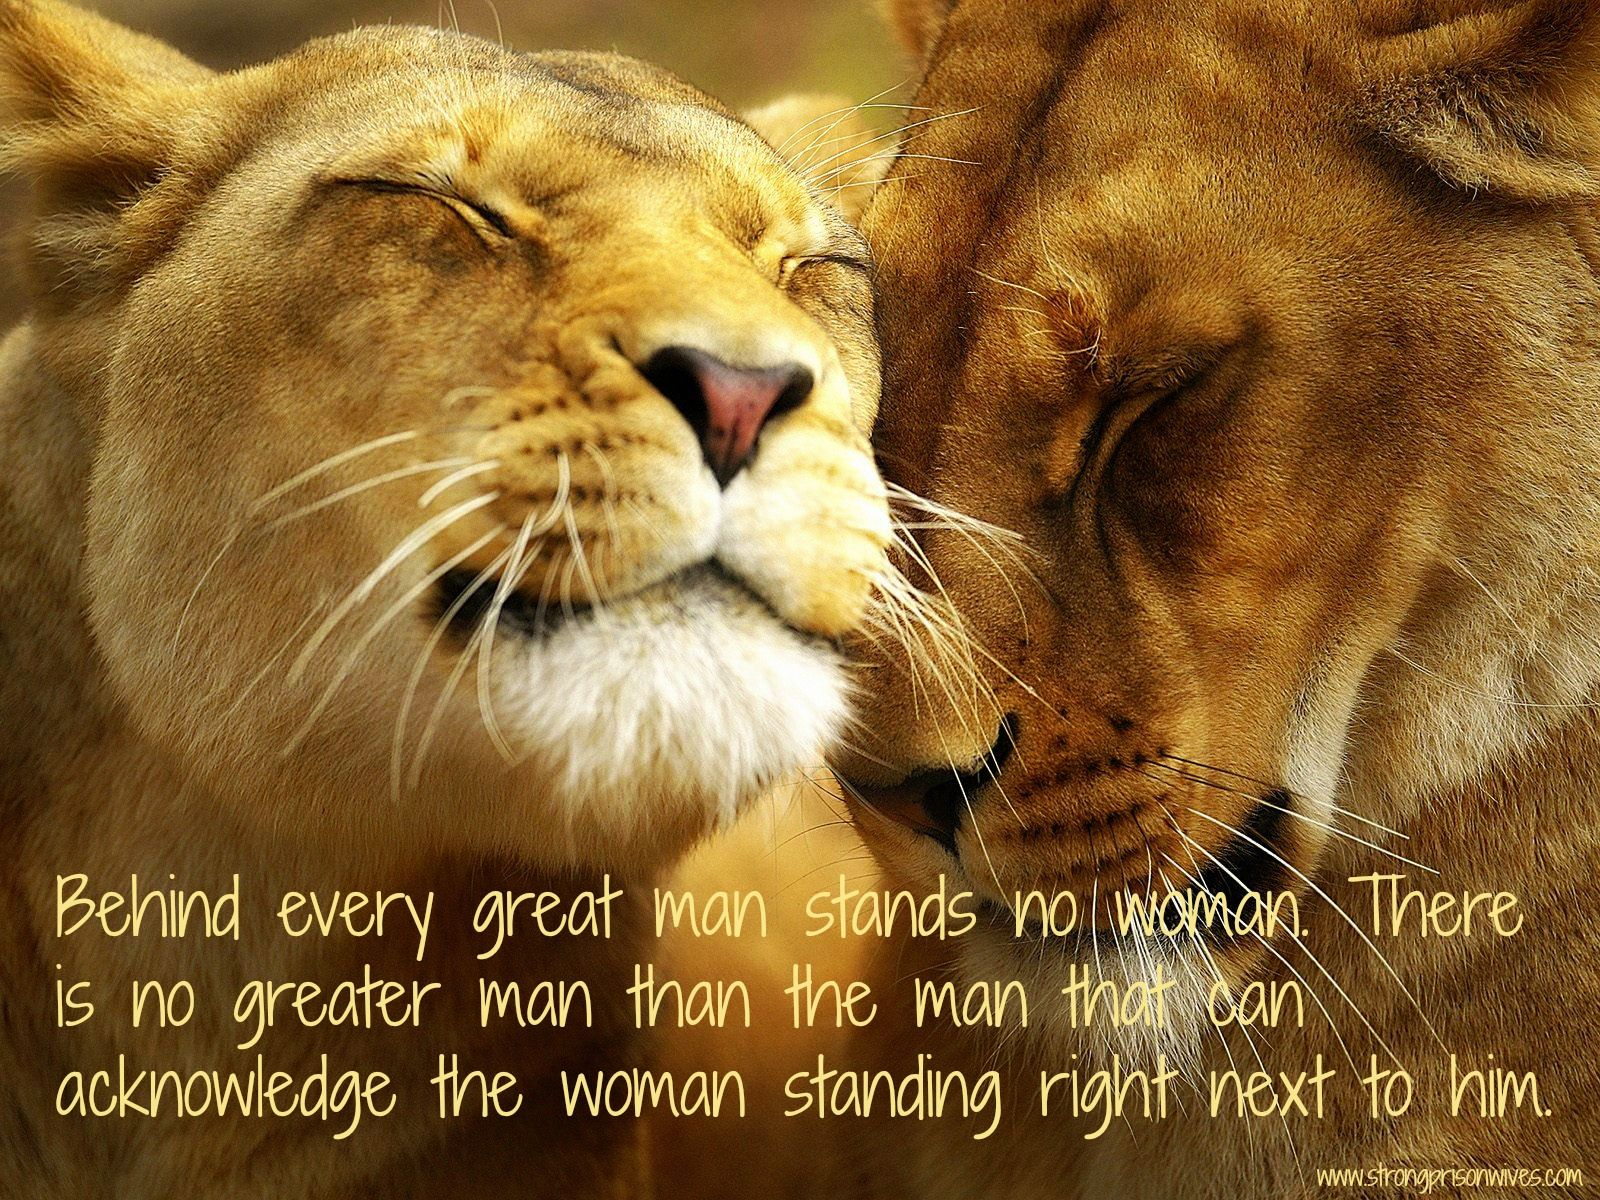 A Great Man Stands Beside His Woman #spwf